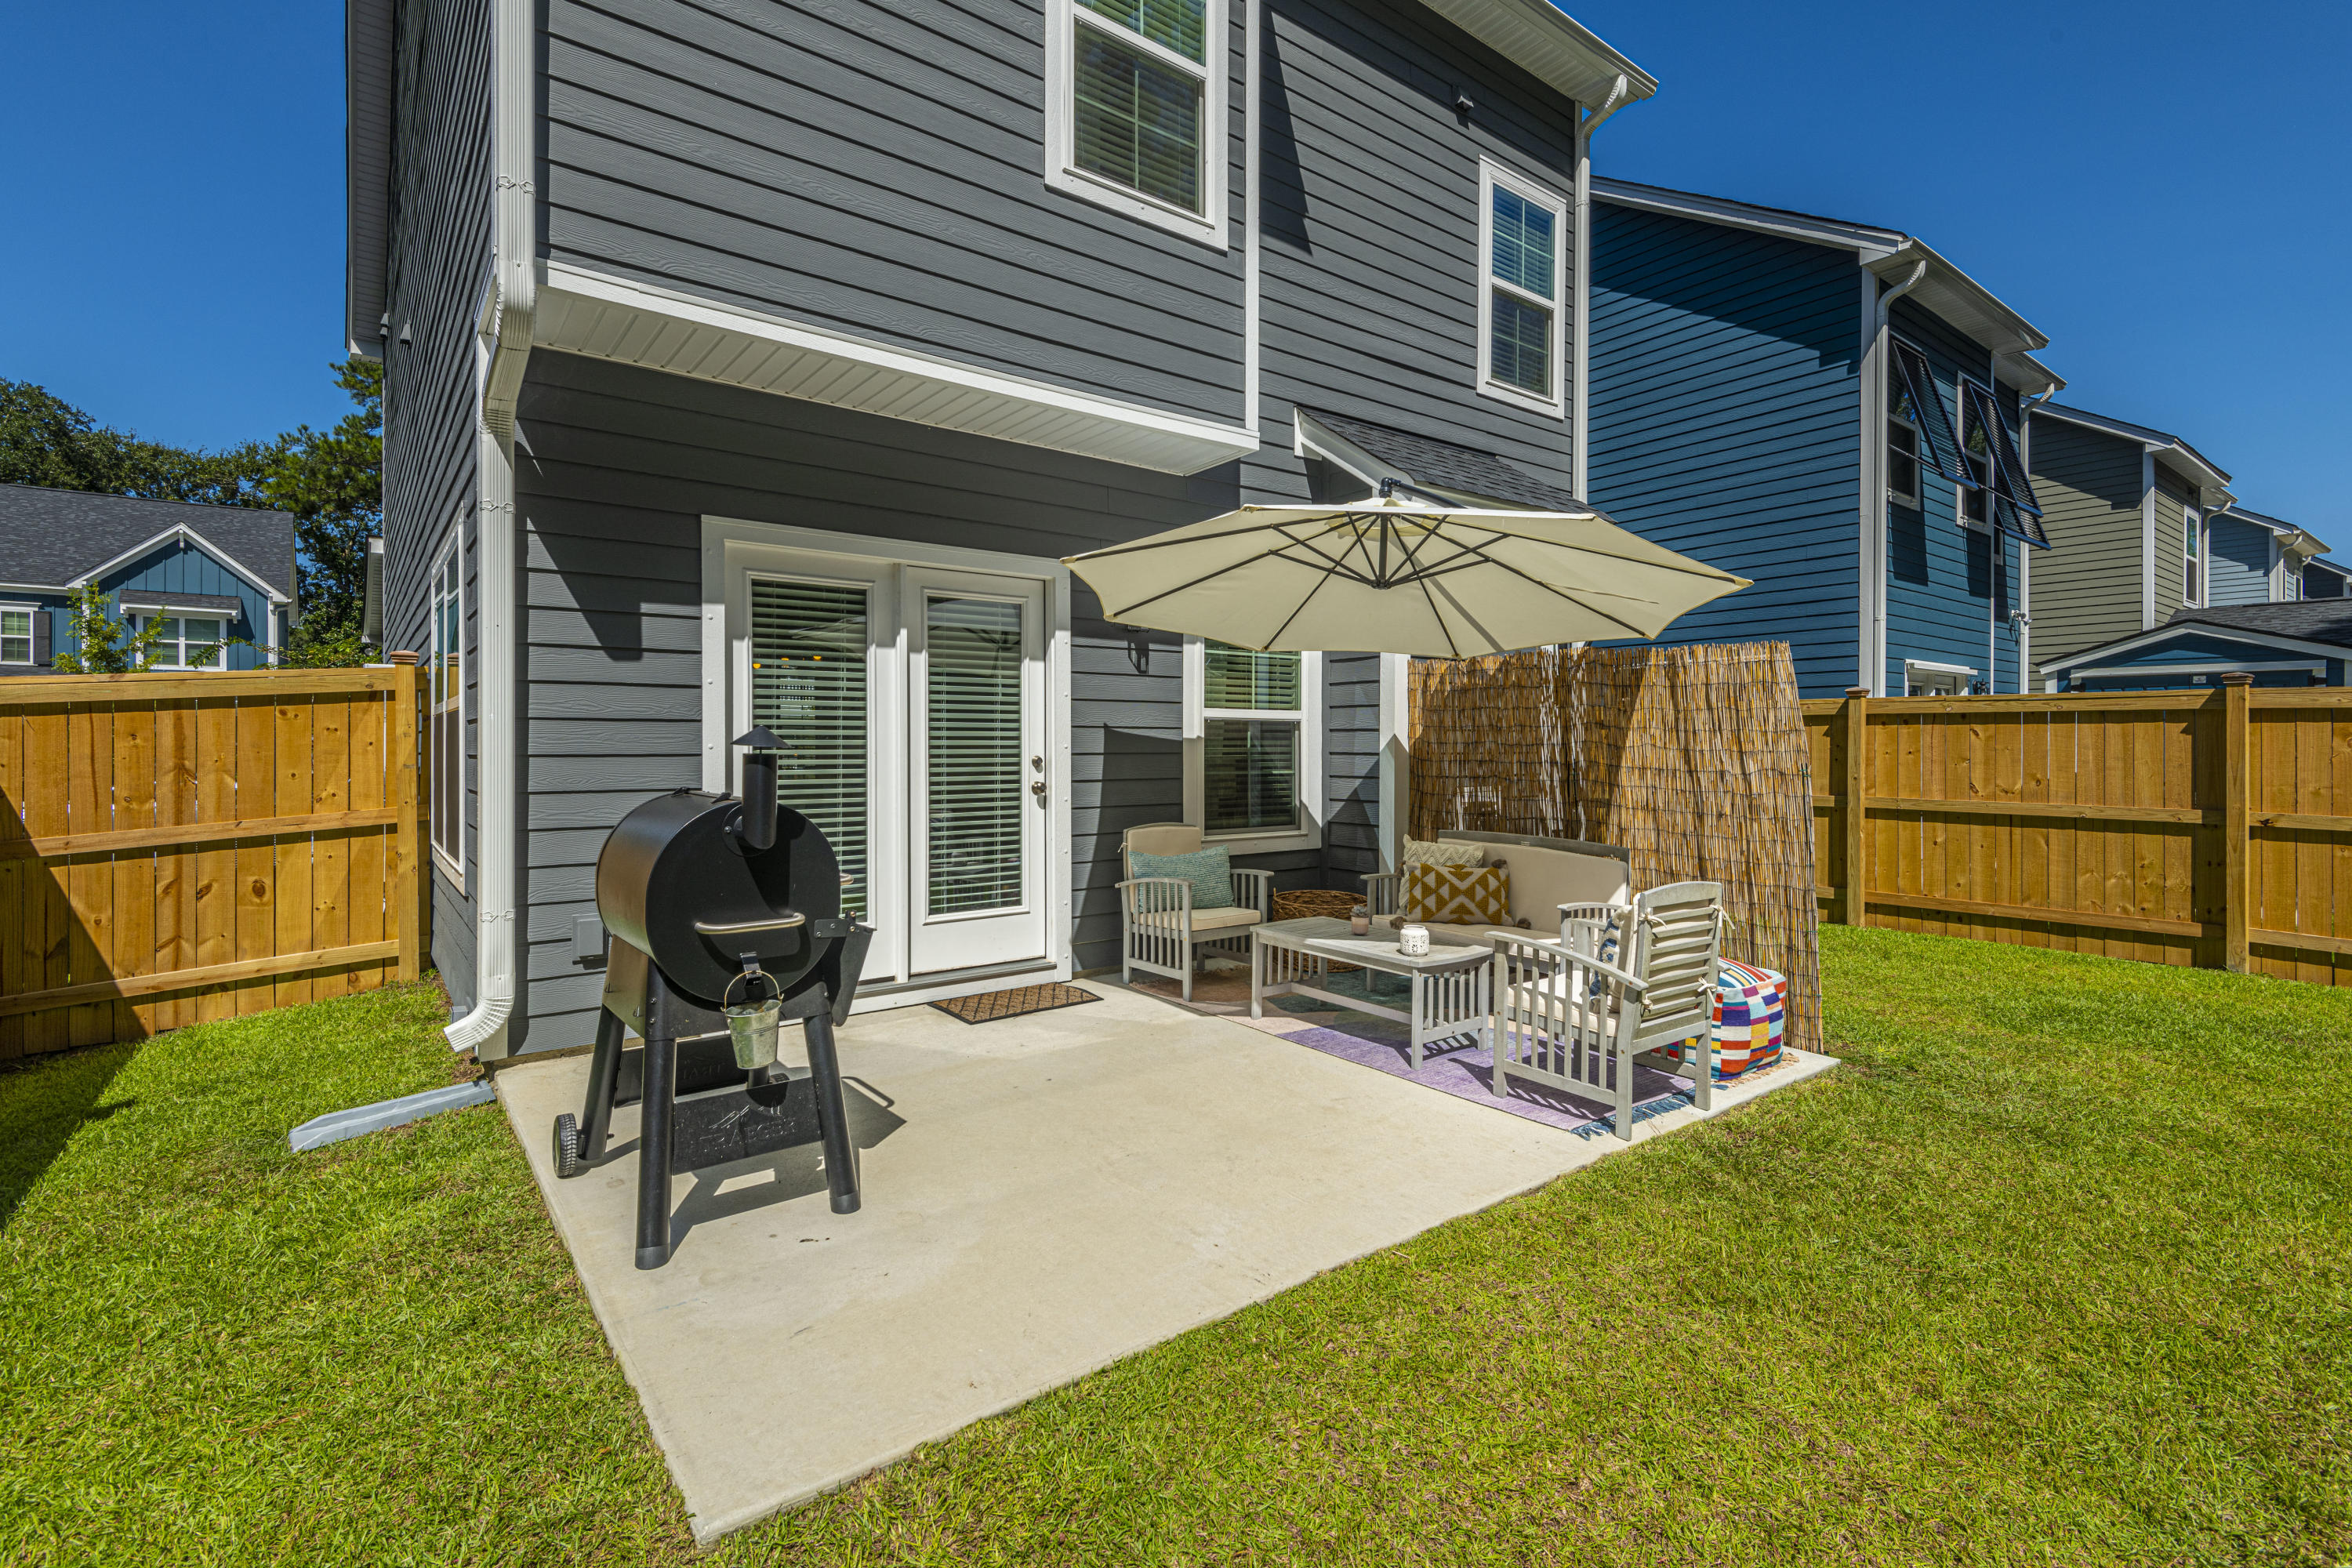 The Oaks at St Johns Crossing Homes For Sale - 1692 Emmets, Johns Island, SC - 27